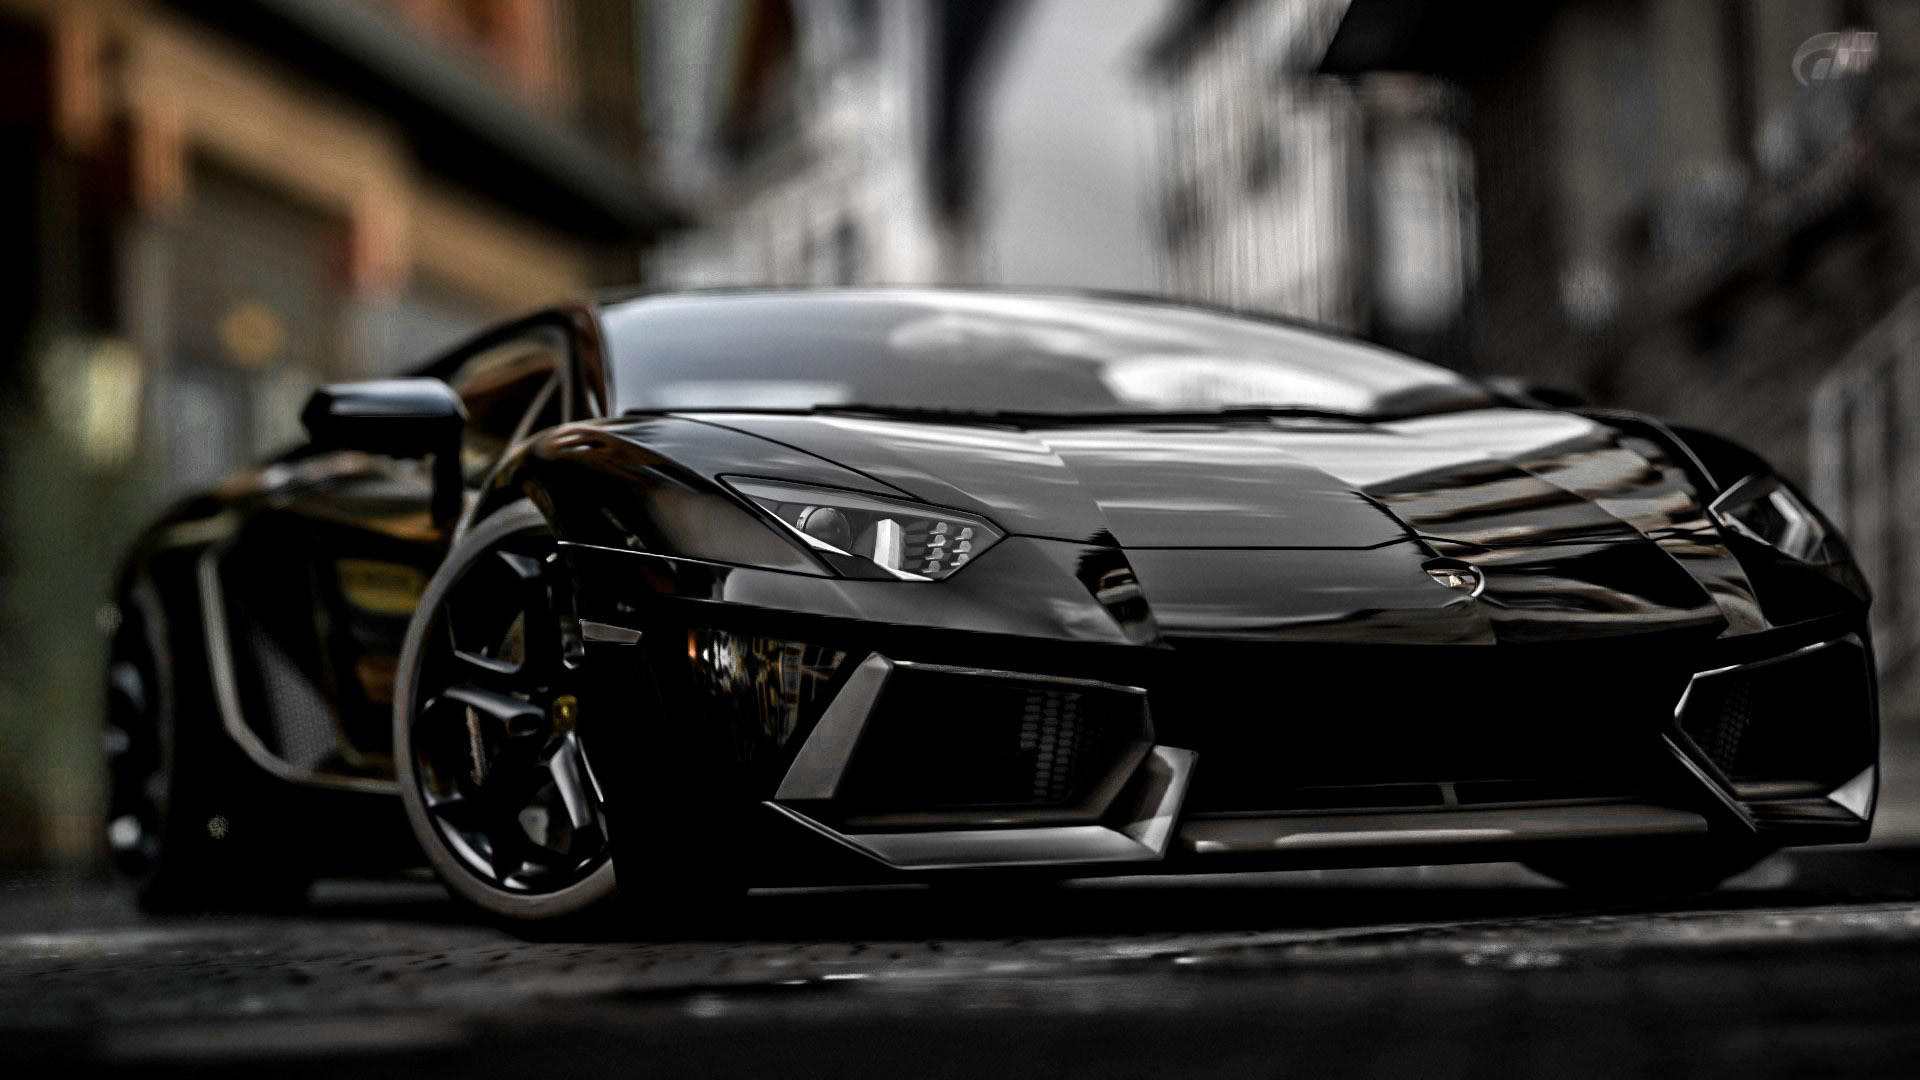 1920x1080 Download Wallpaper Lamborghini Aventador 45 with Download Wallpaper  Lamborghini Aventador